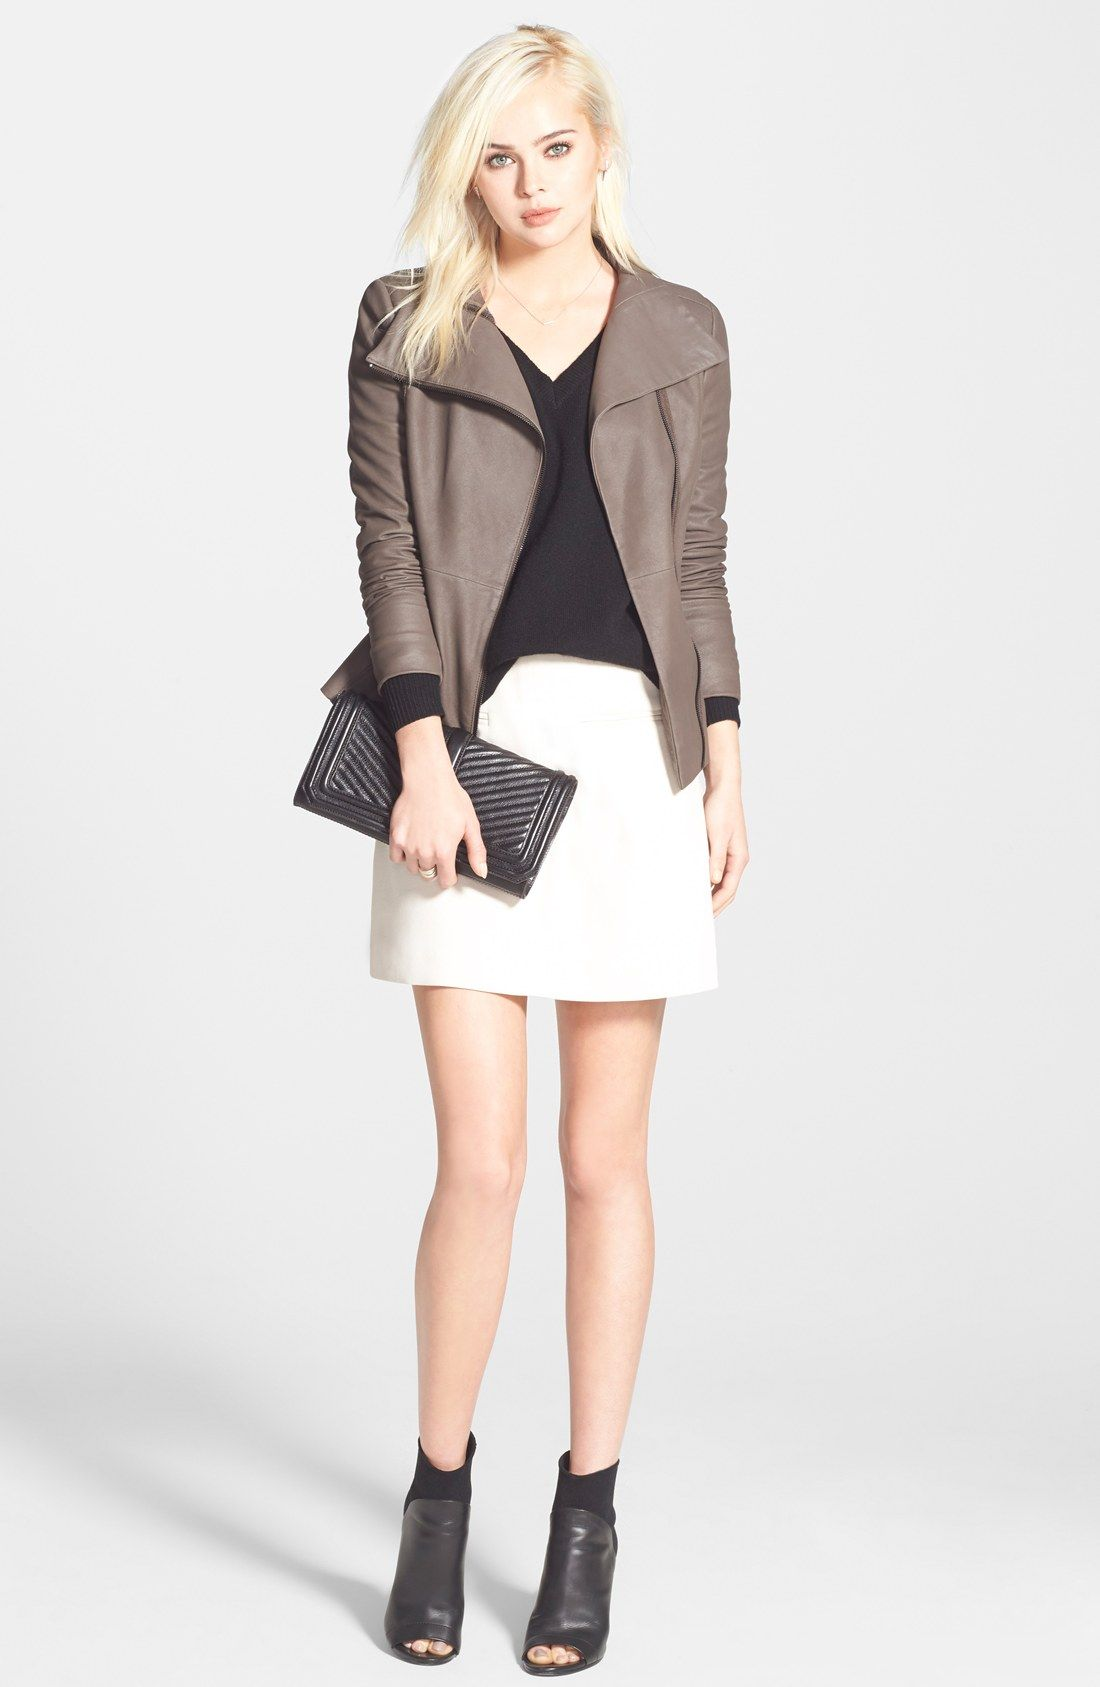 T Tahari Leather Moto Jacket Halogen Sweater Chelsea28 Skirt Nordstrom Collar Leather Jacket Gorgeous Clothes Clothes [ 1687 x 1100 Pixel ]